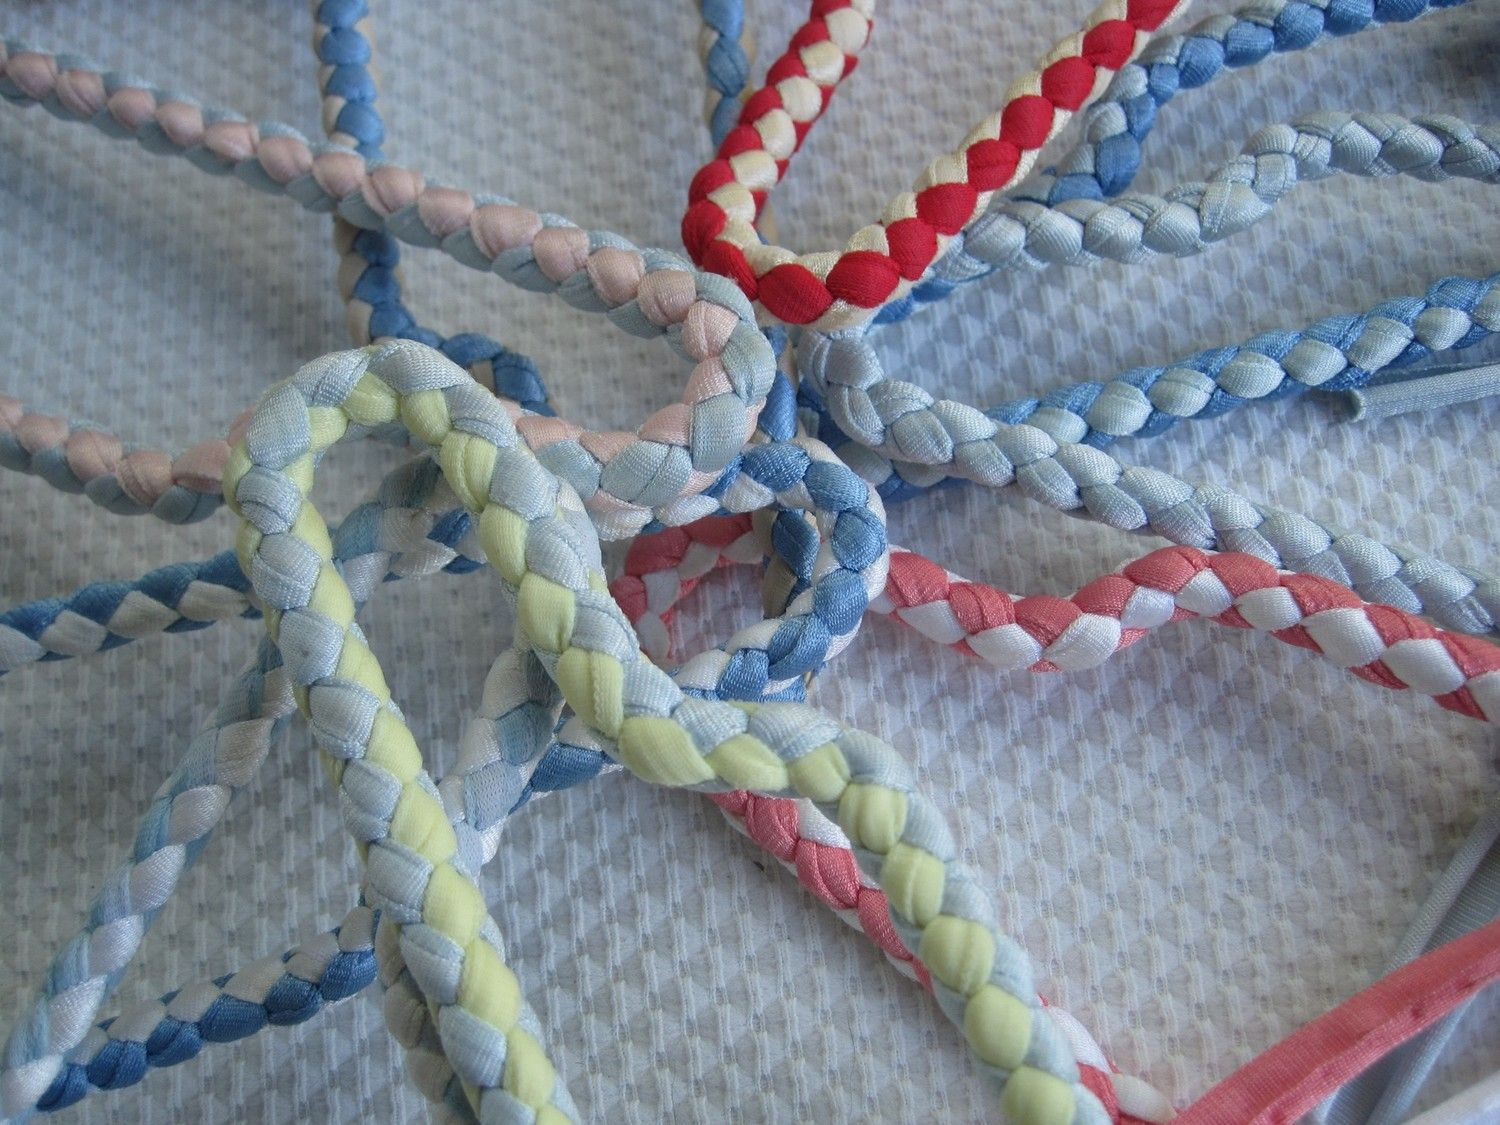 Vintage Braided Ribbon Hangers | Organizing/Misc great ideas ...